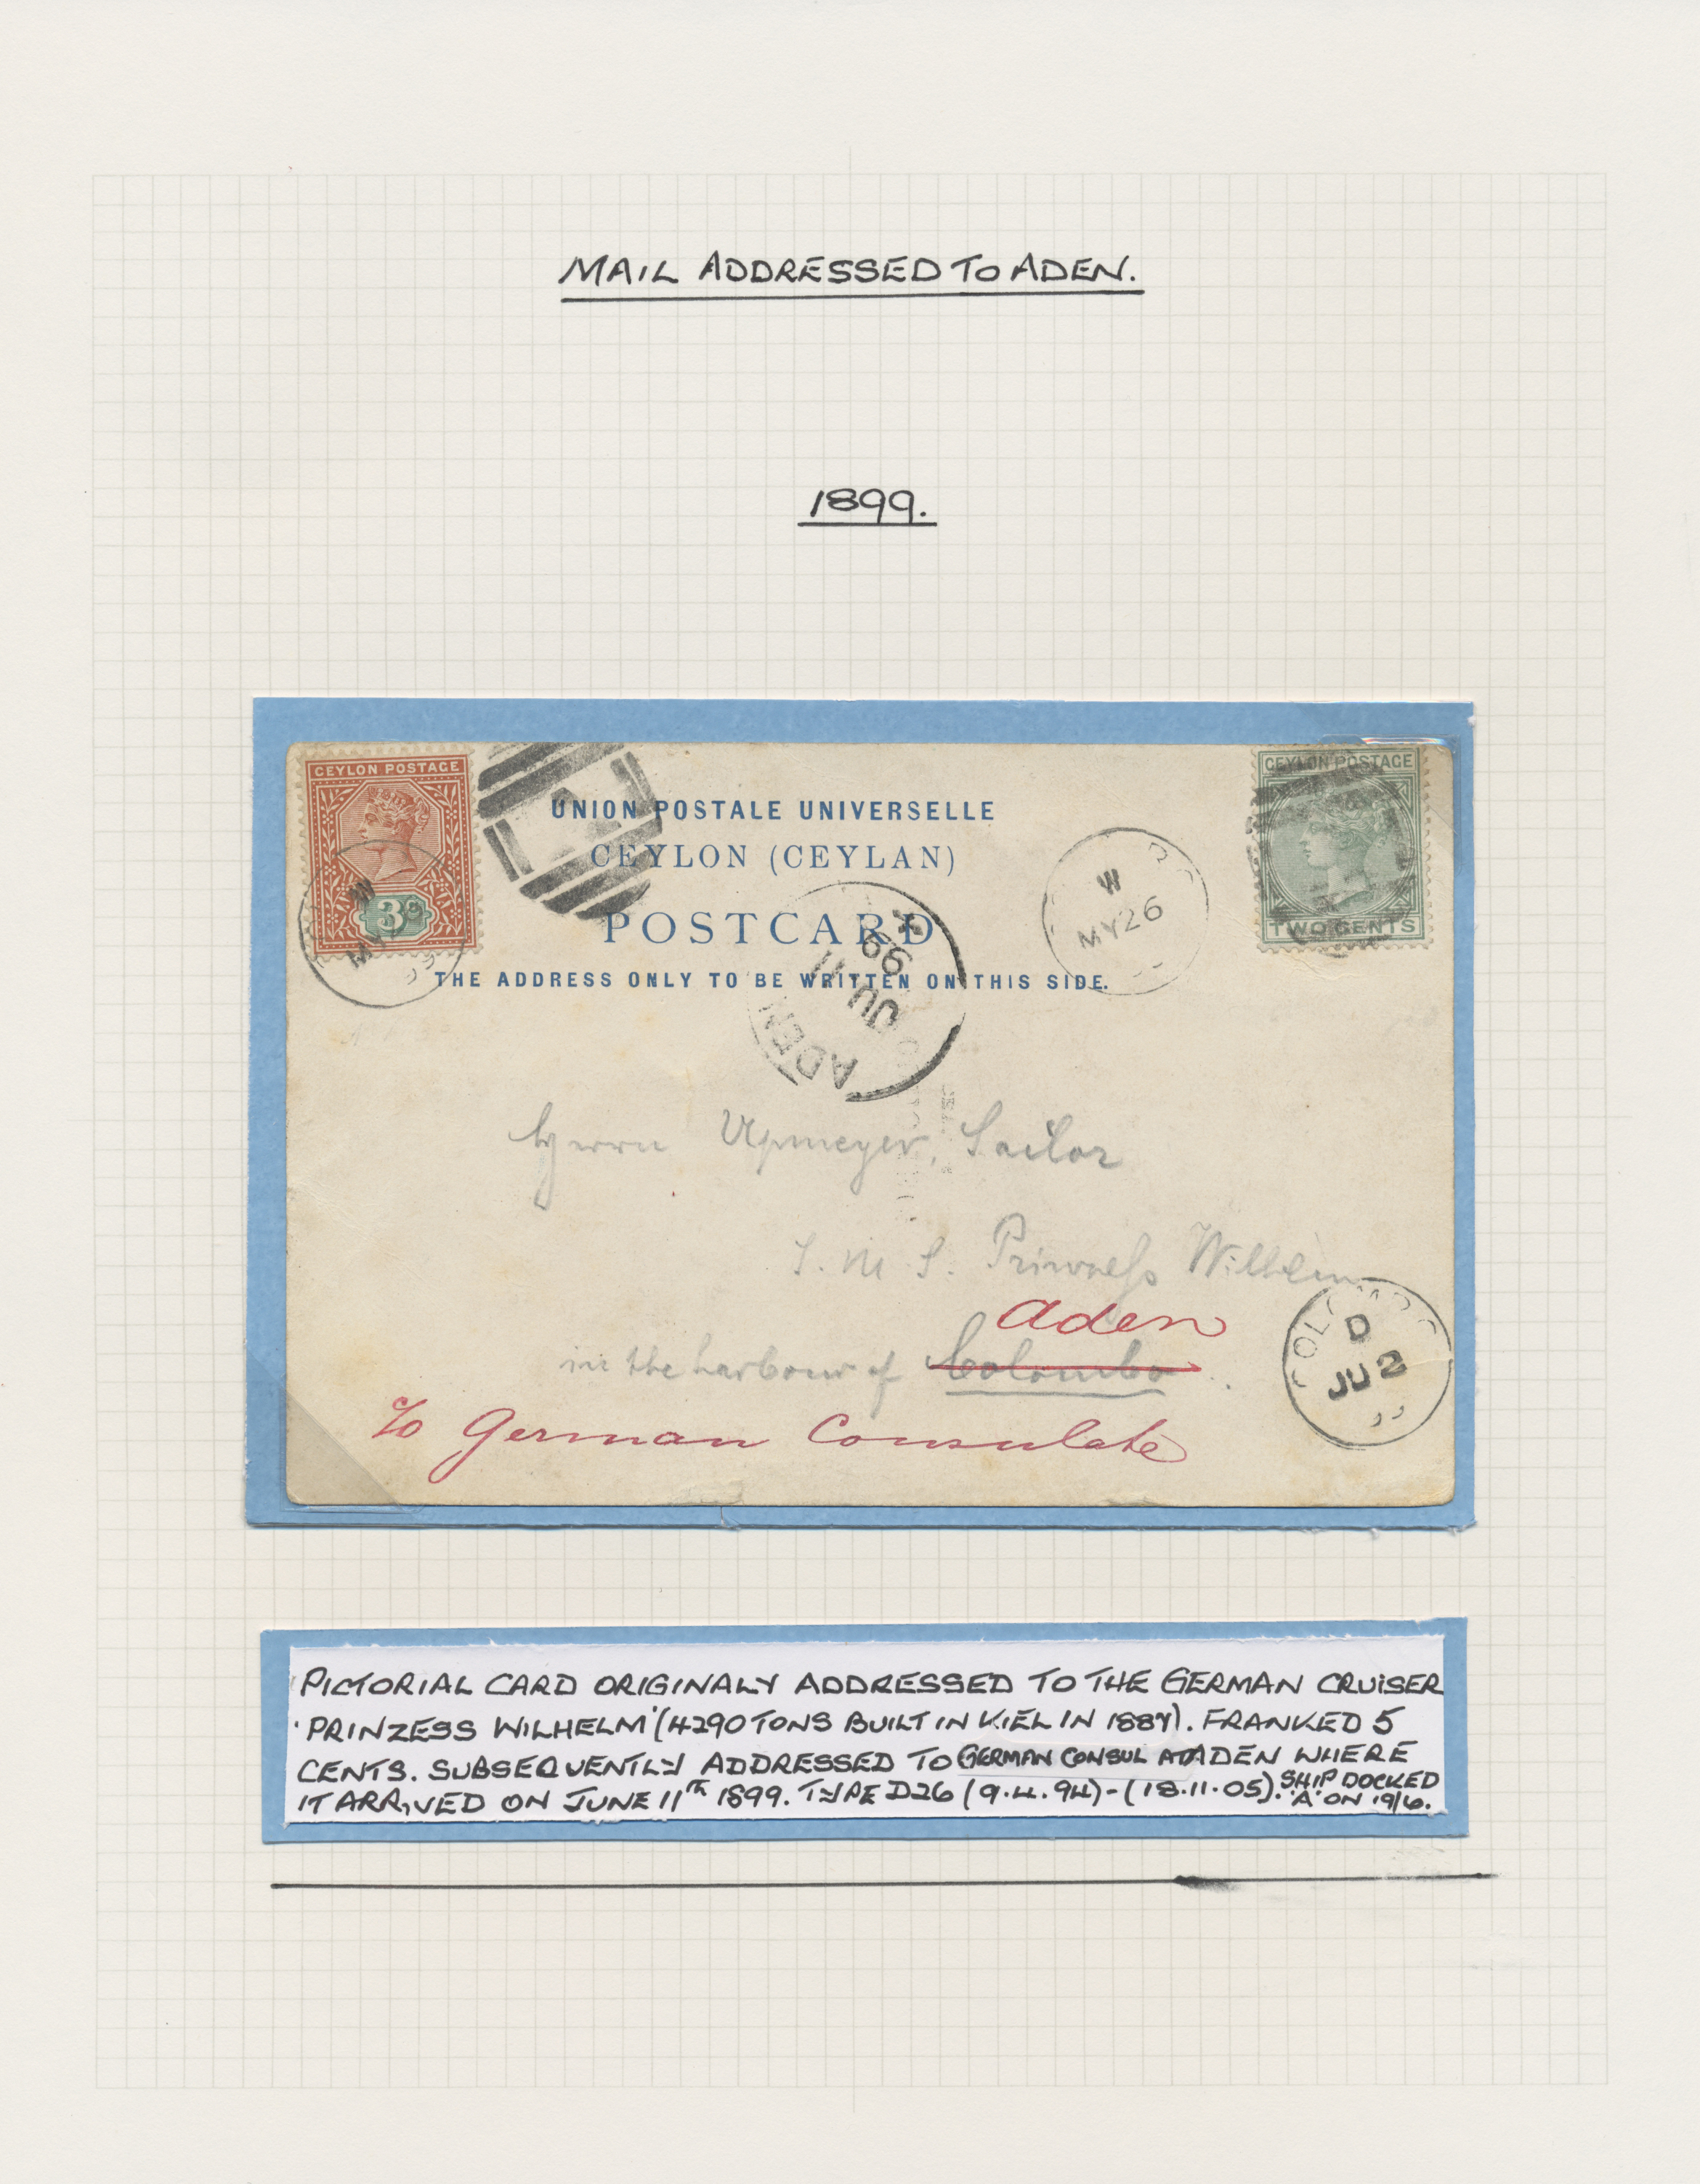 Lot 26600 - aden  -  Auktionshaus Christoph Gärtner GmbH & Co. KG Sale #46 Gollcetions Germany - including the suplement